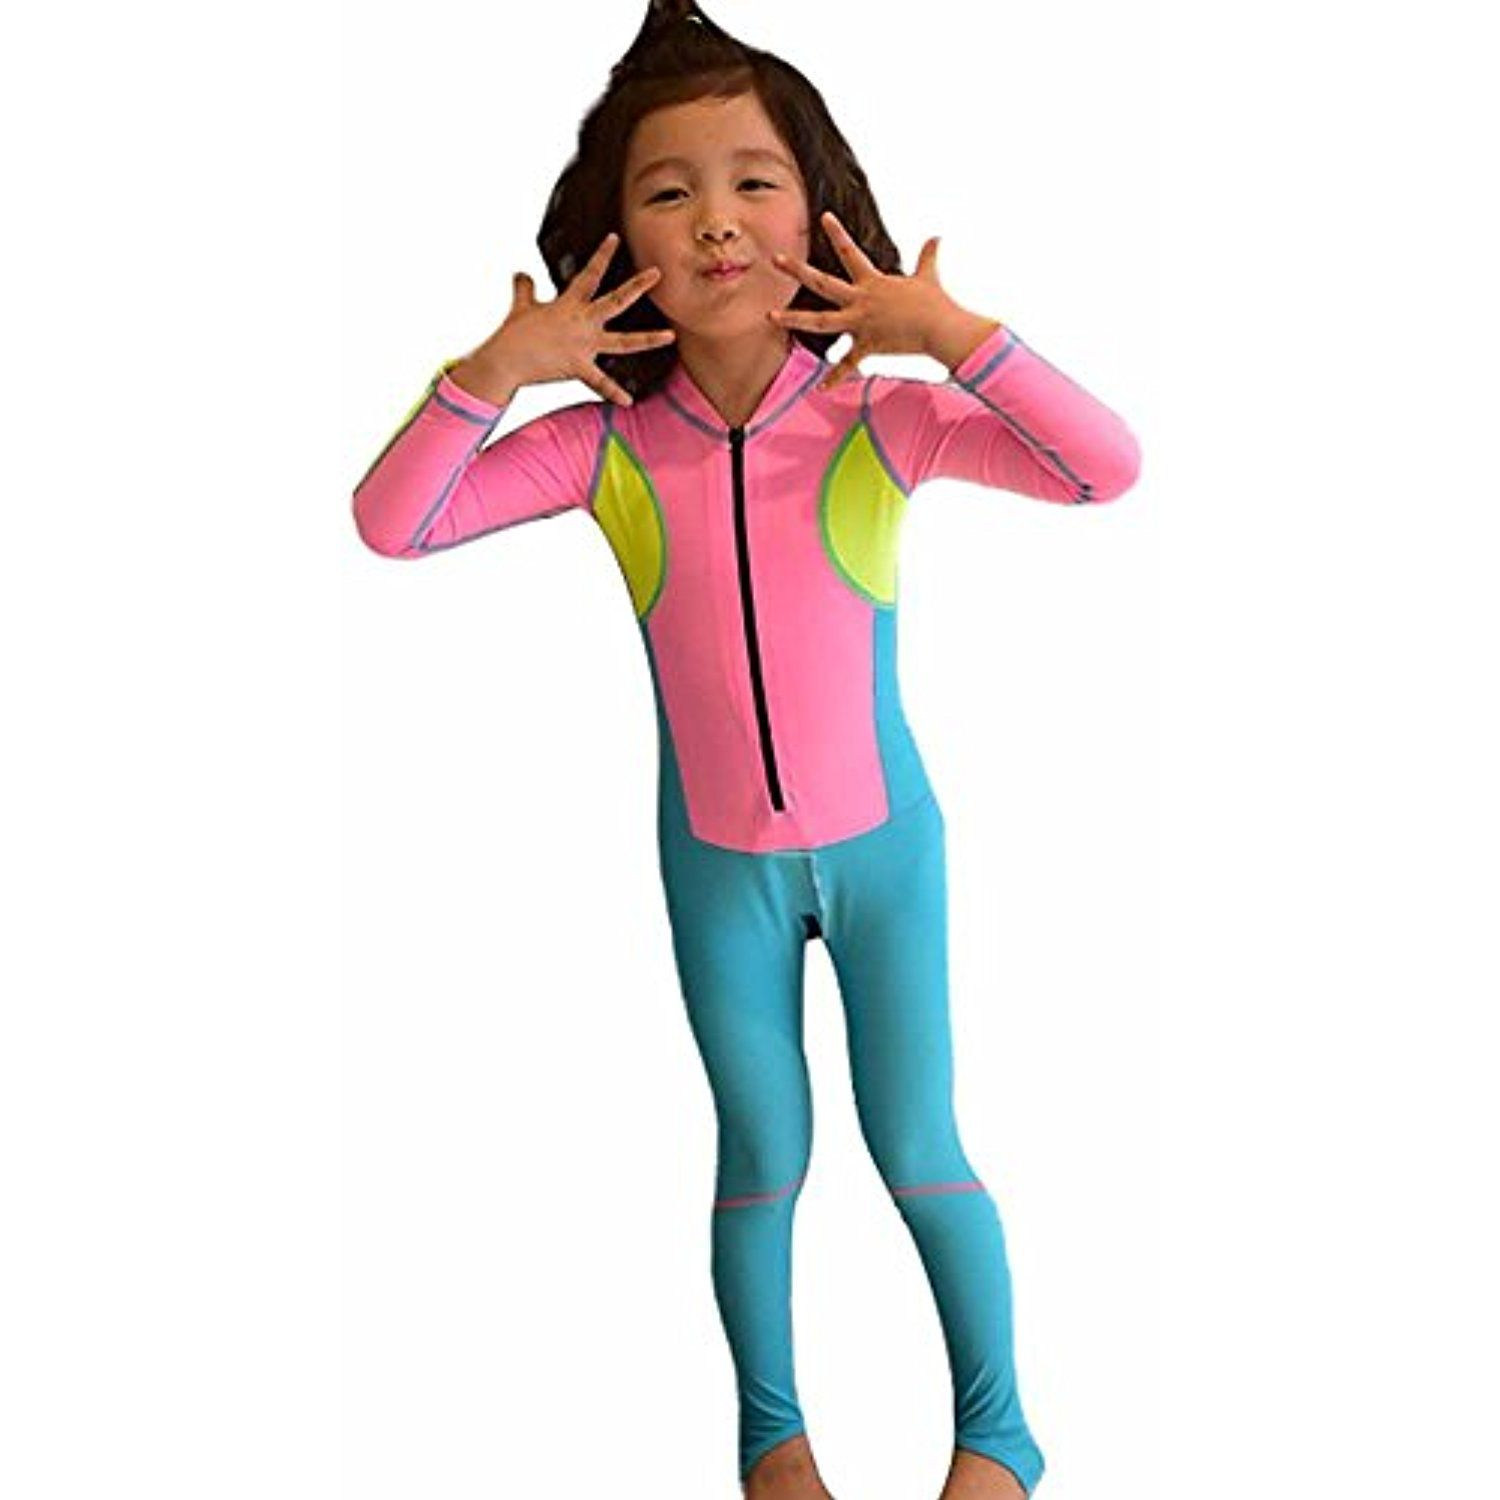 7dc7e3a1ff C360 Girls Boys Sports Long Sleeve Swimsuit One-piece Swimwear Kids  Swimming Suit Professional Swimwear >>> Details can be found by clicking on  the image.